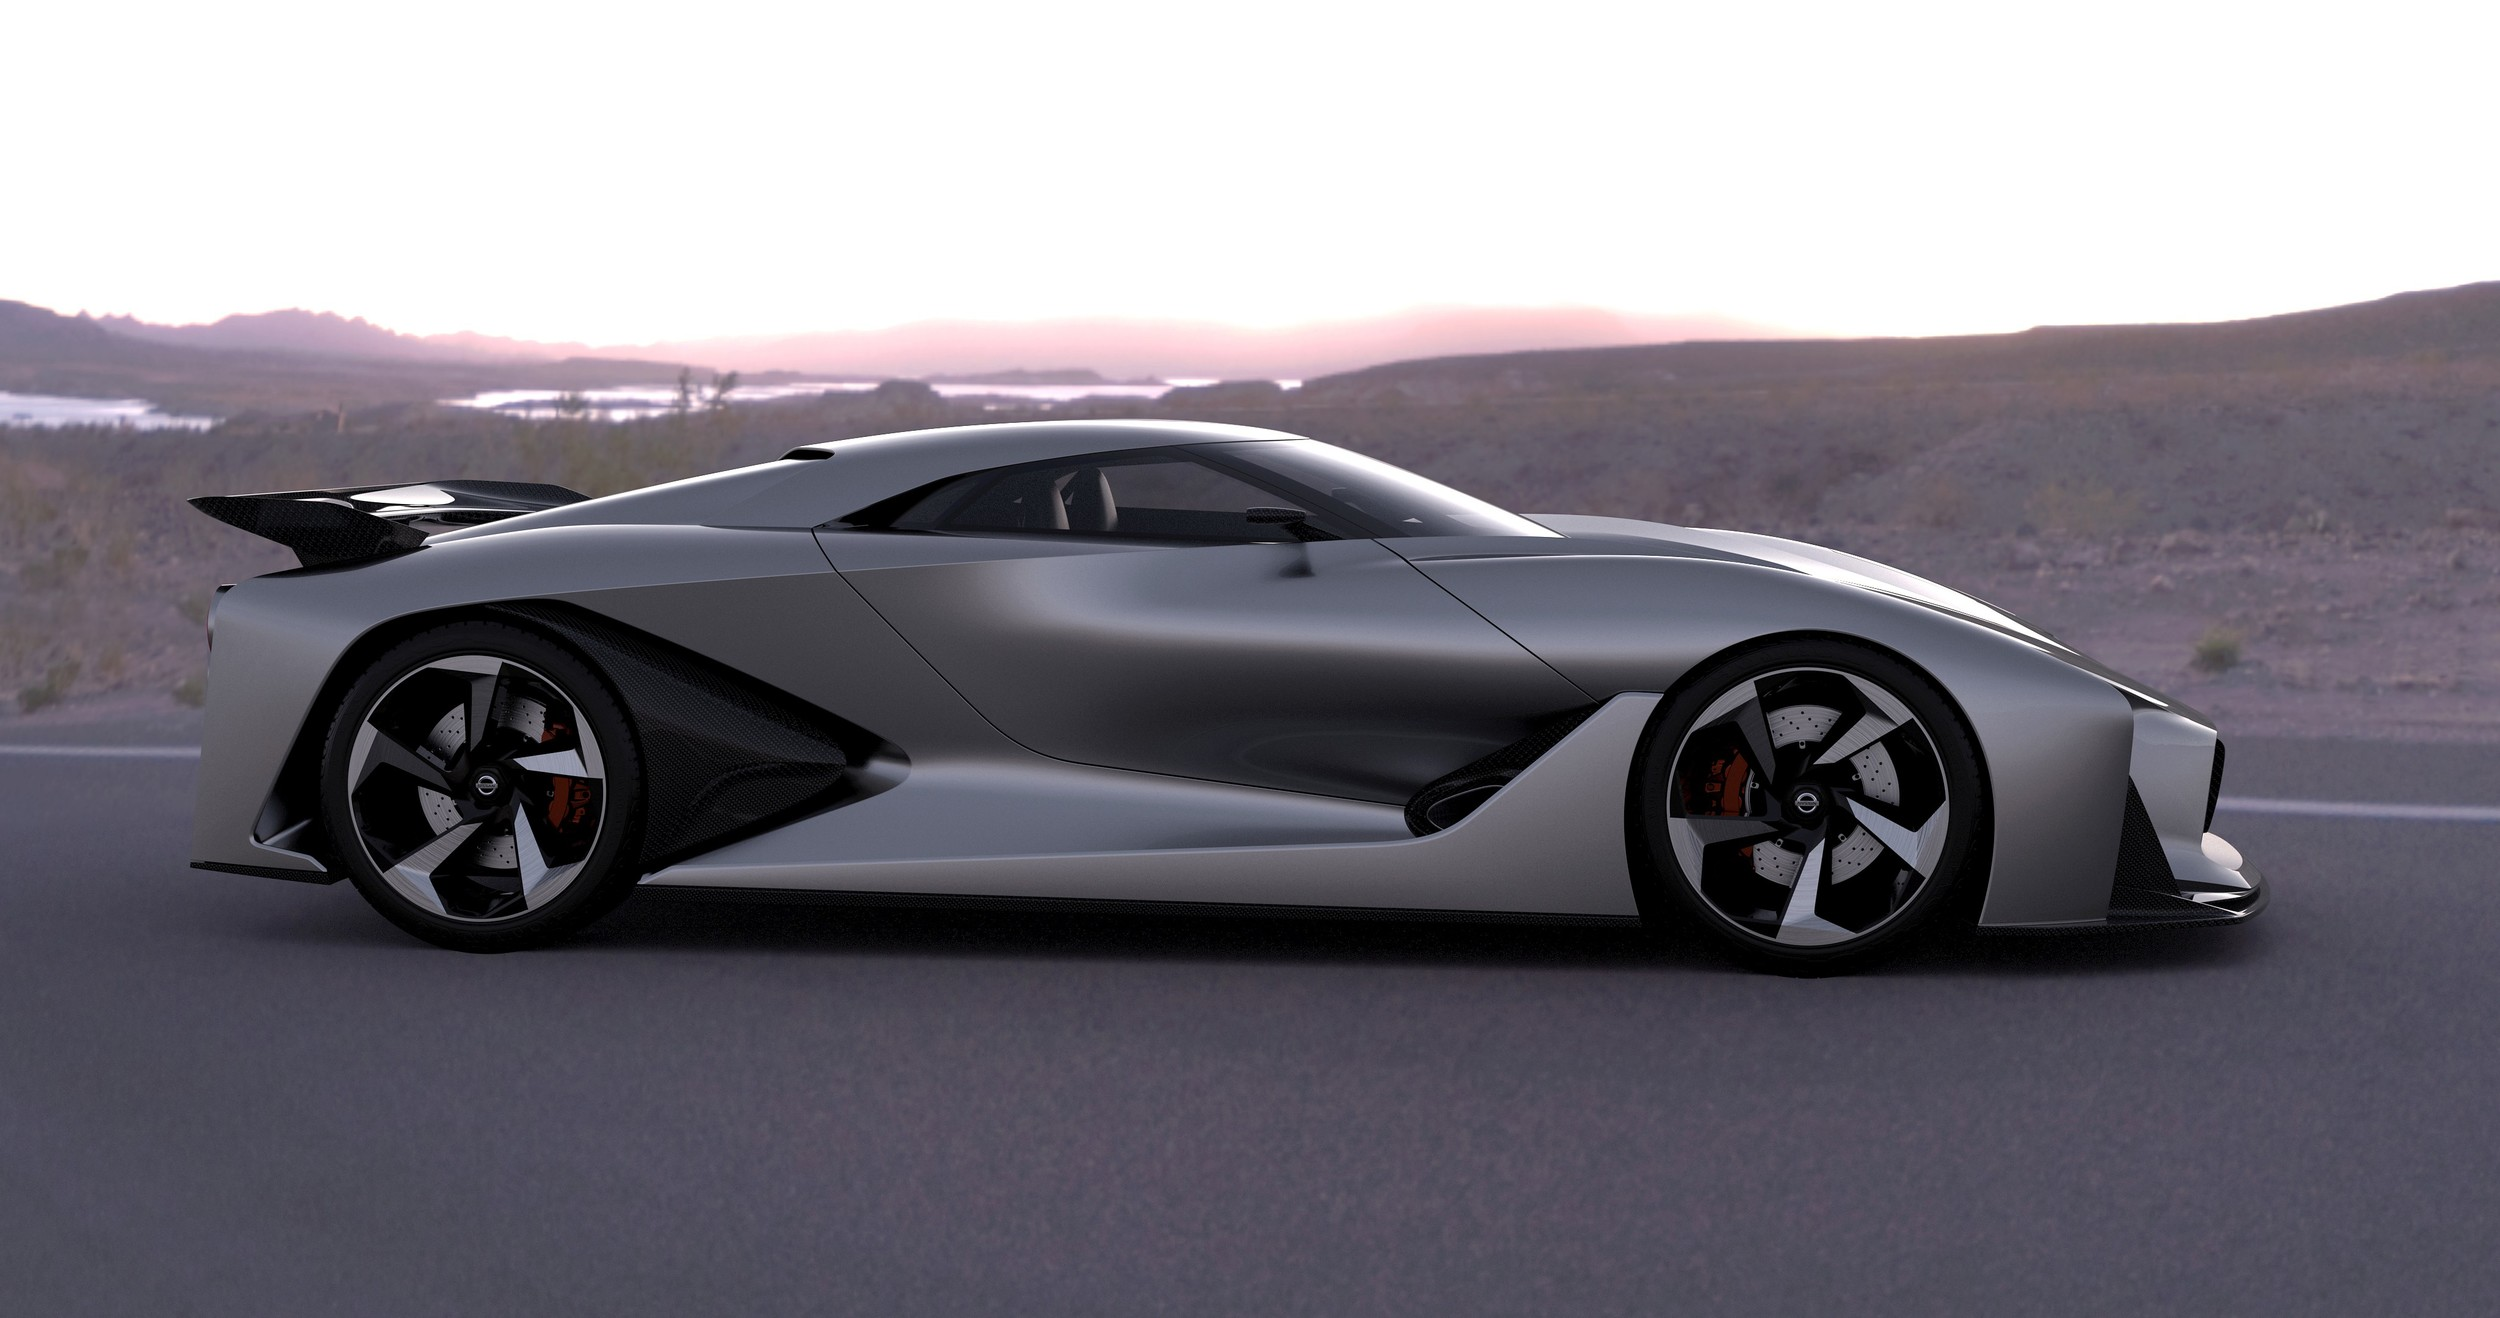 2014_Nissan_Concept_2020_Vision_Gran_Turismo_003_7592.jpg